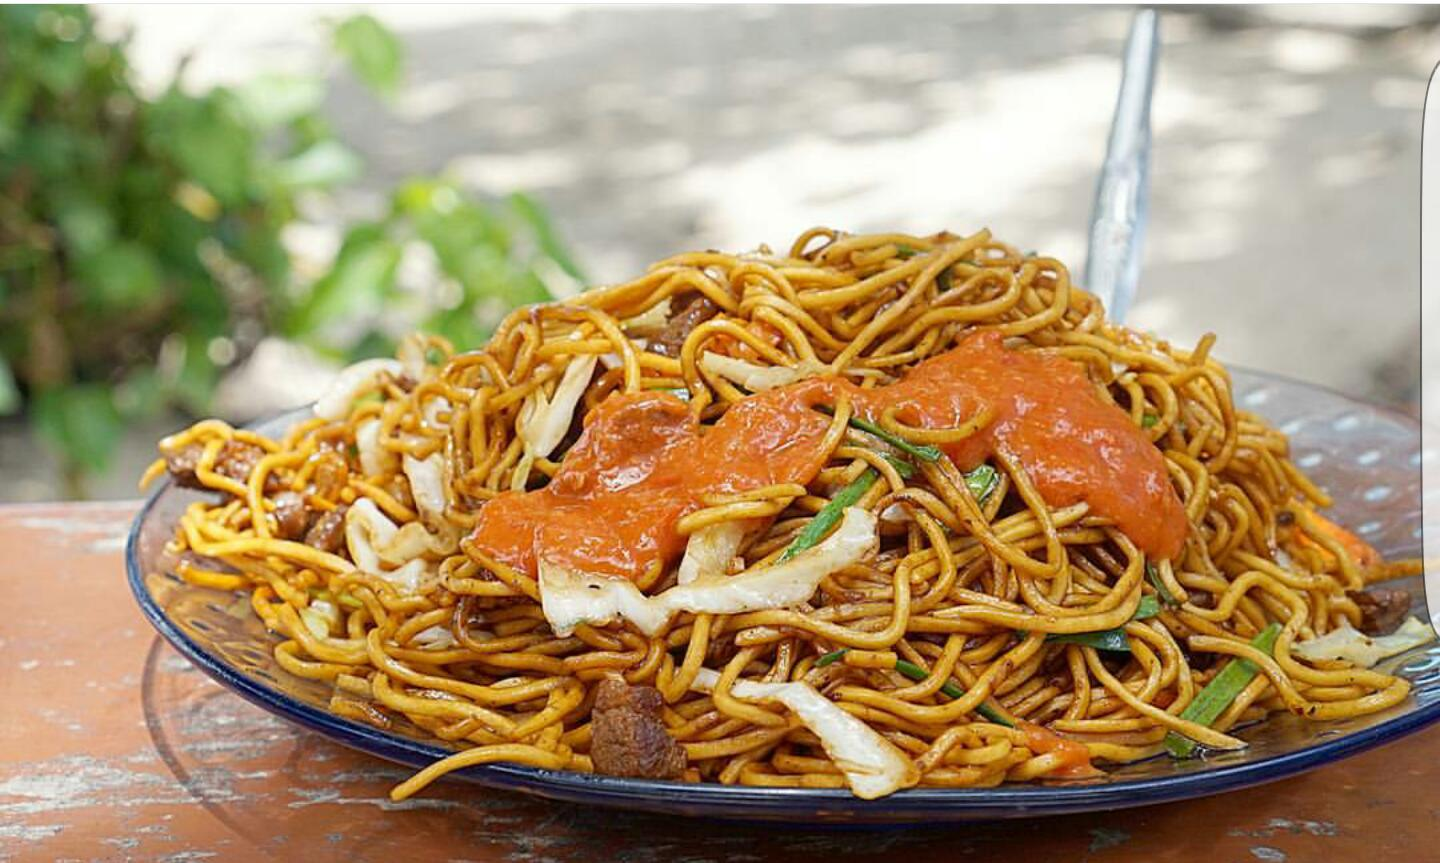 The classic Min Frire Mauritian Fried Noodles